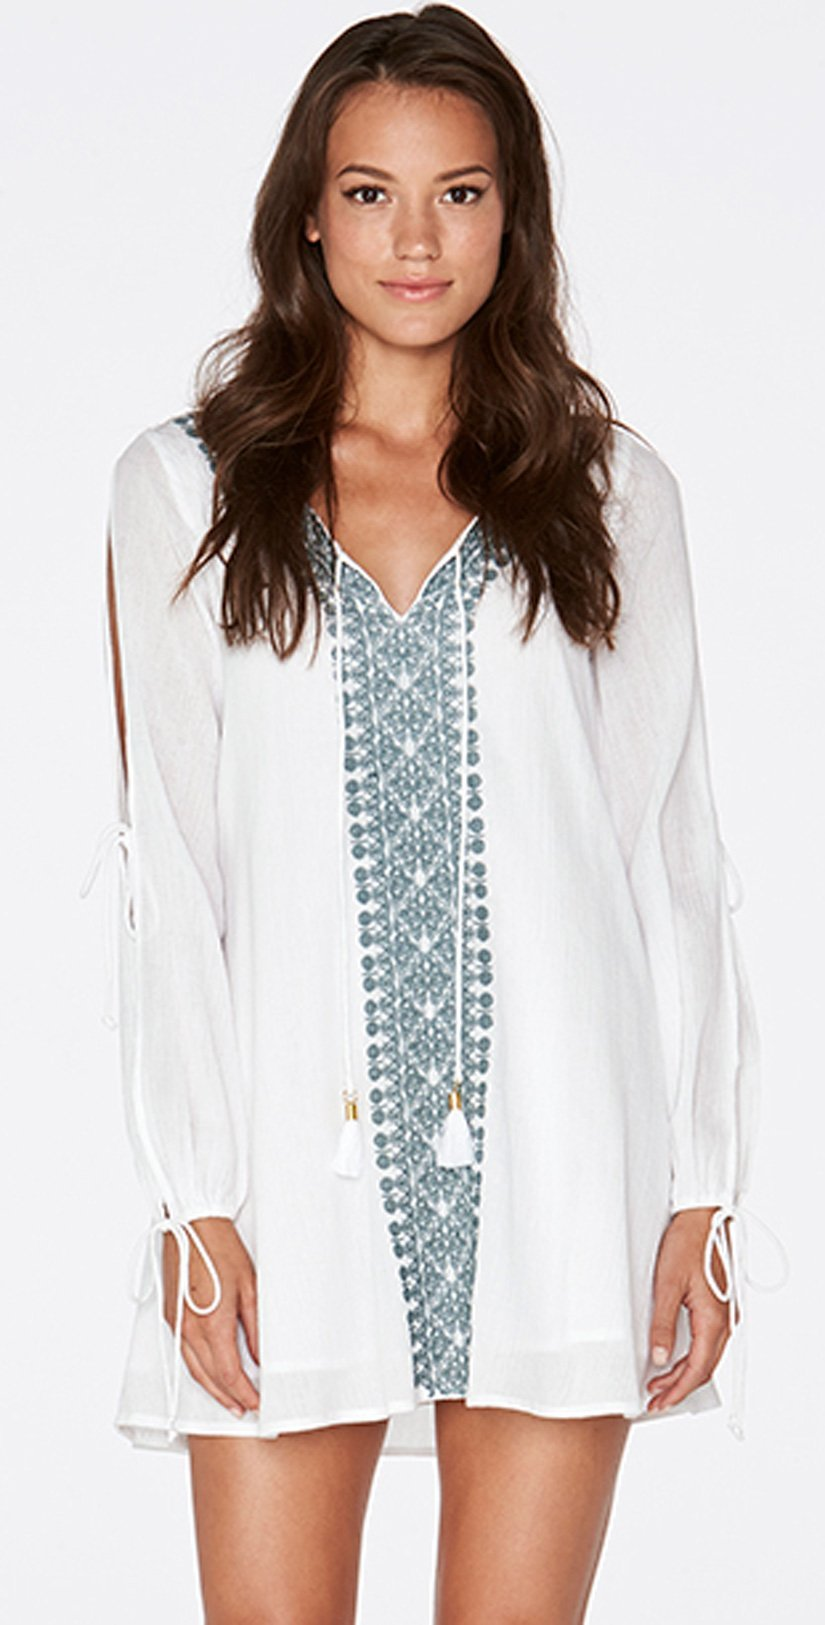 LSpace Women's Gold Coast Tunic, White/Slated Glass, Small by L*Space